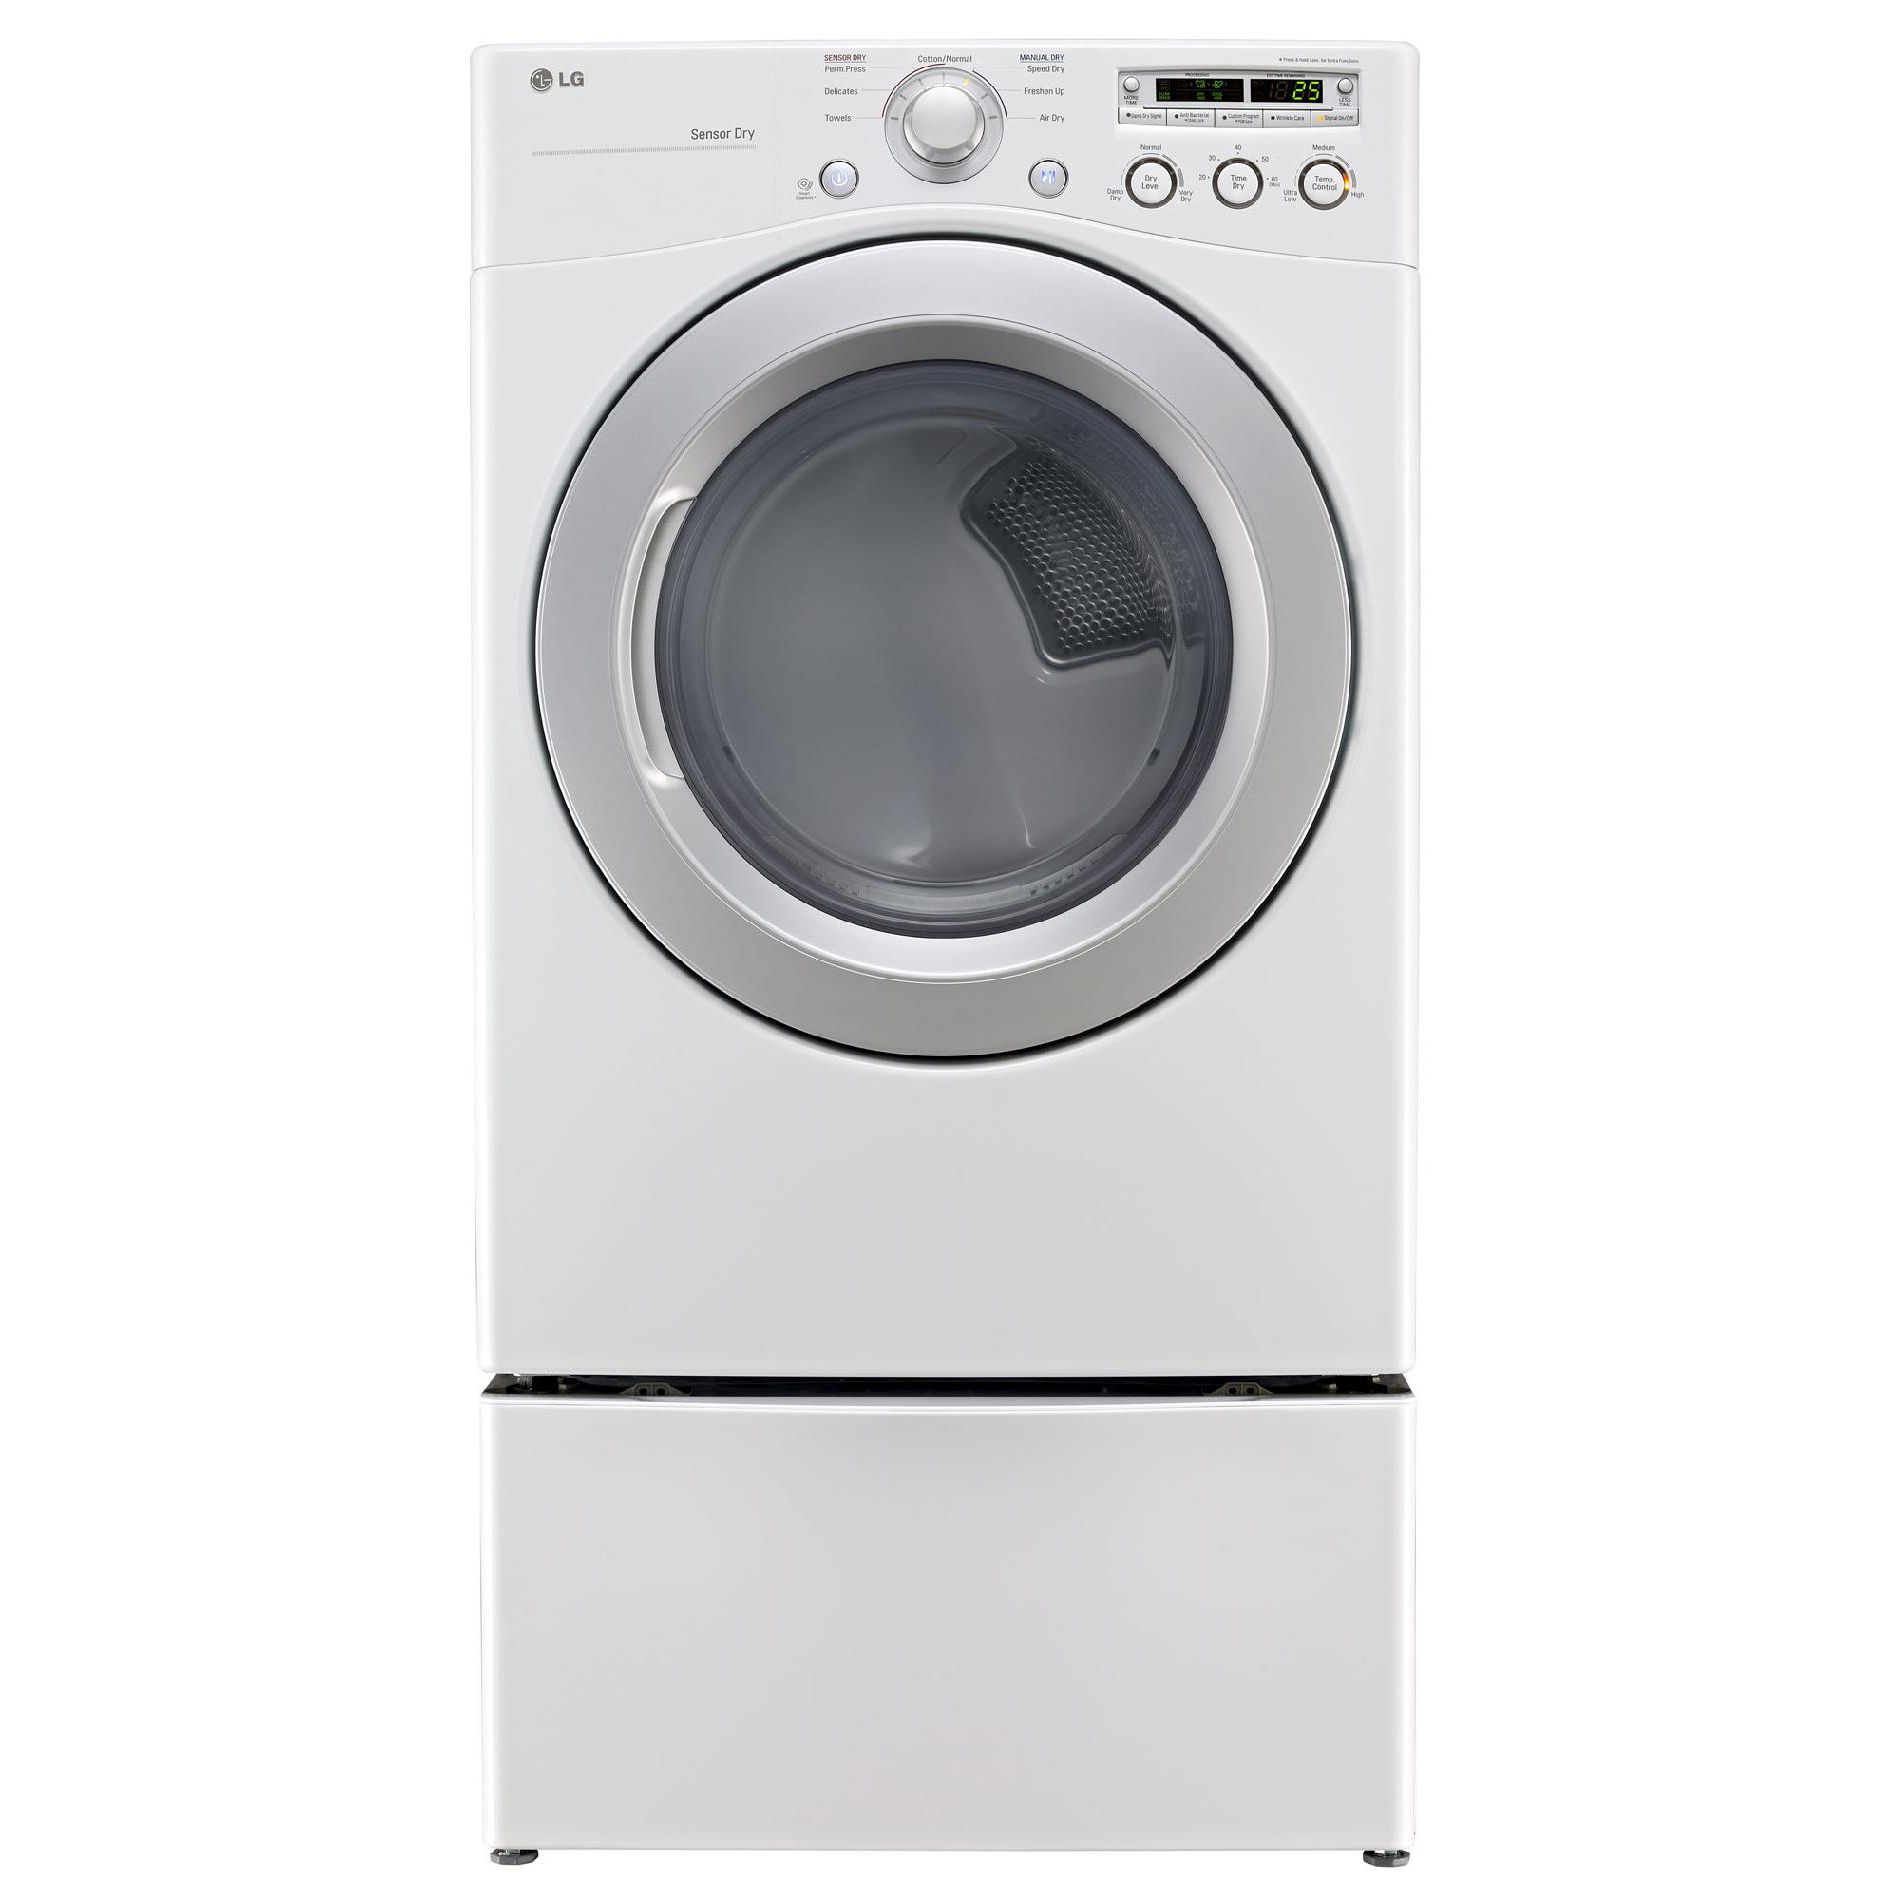 LG 7.3 cu. ft. Electric Dryer w/ Sensor Dry - White